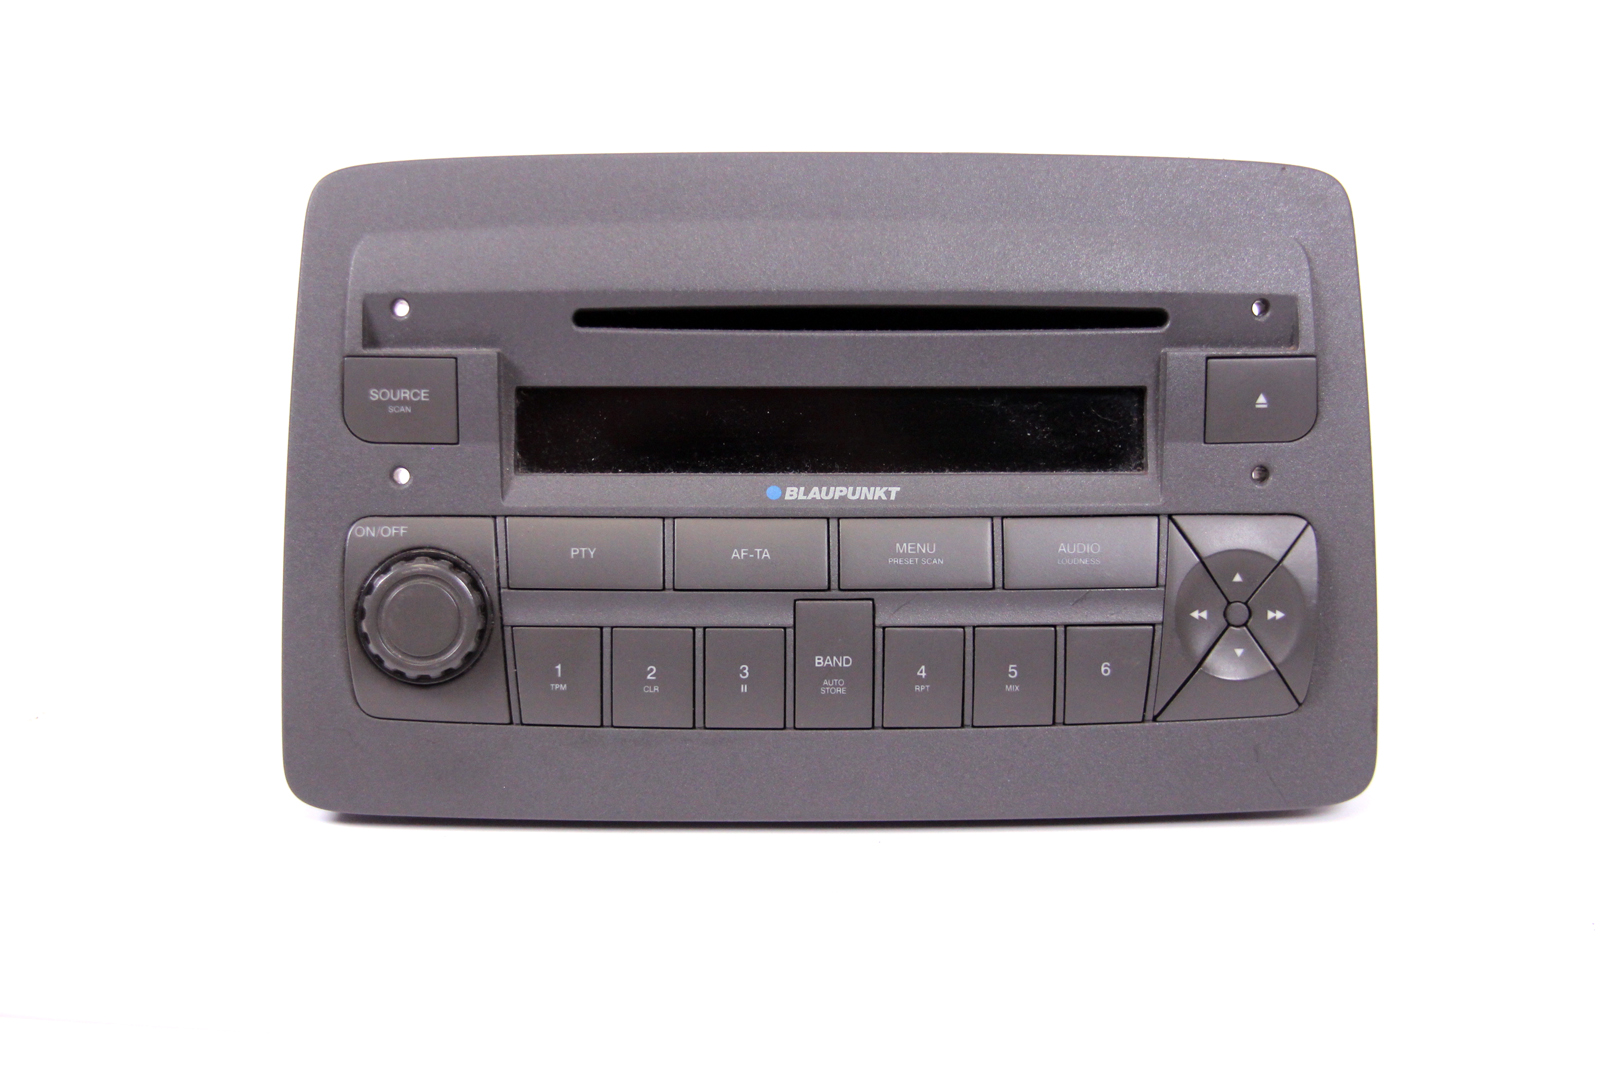 Radio-cd-player Für Badezimmer Fiat Panda Autoradio Cd Radio Player Blaupunkt 7643363316